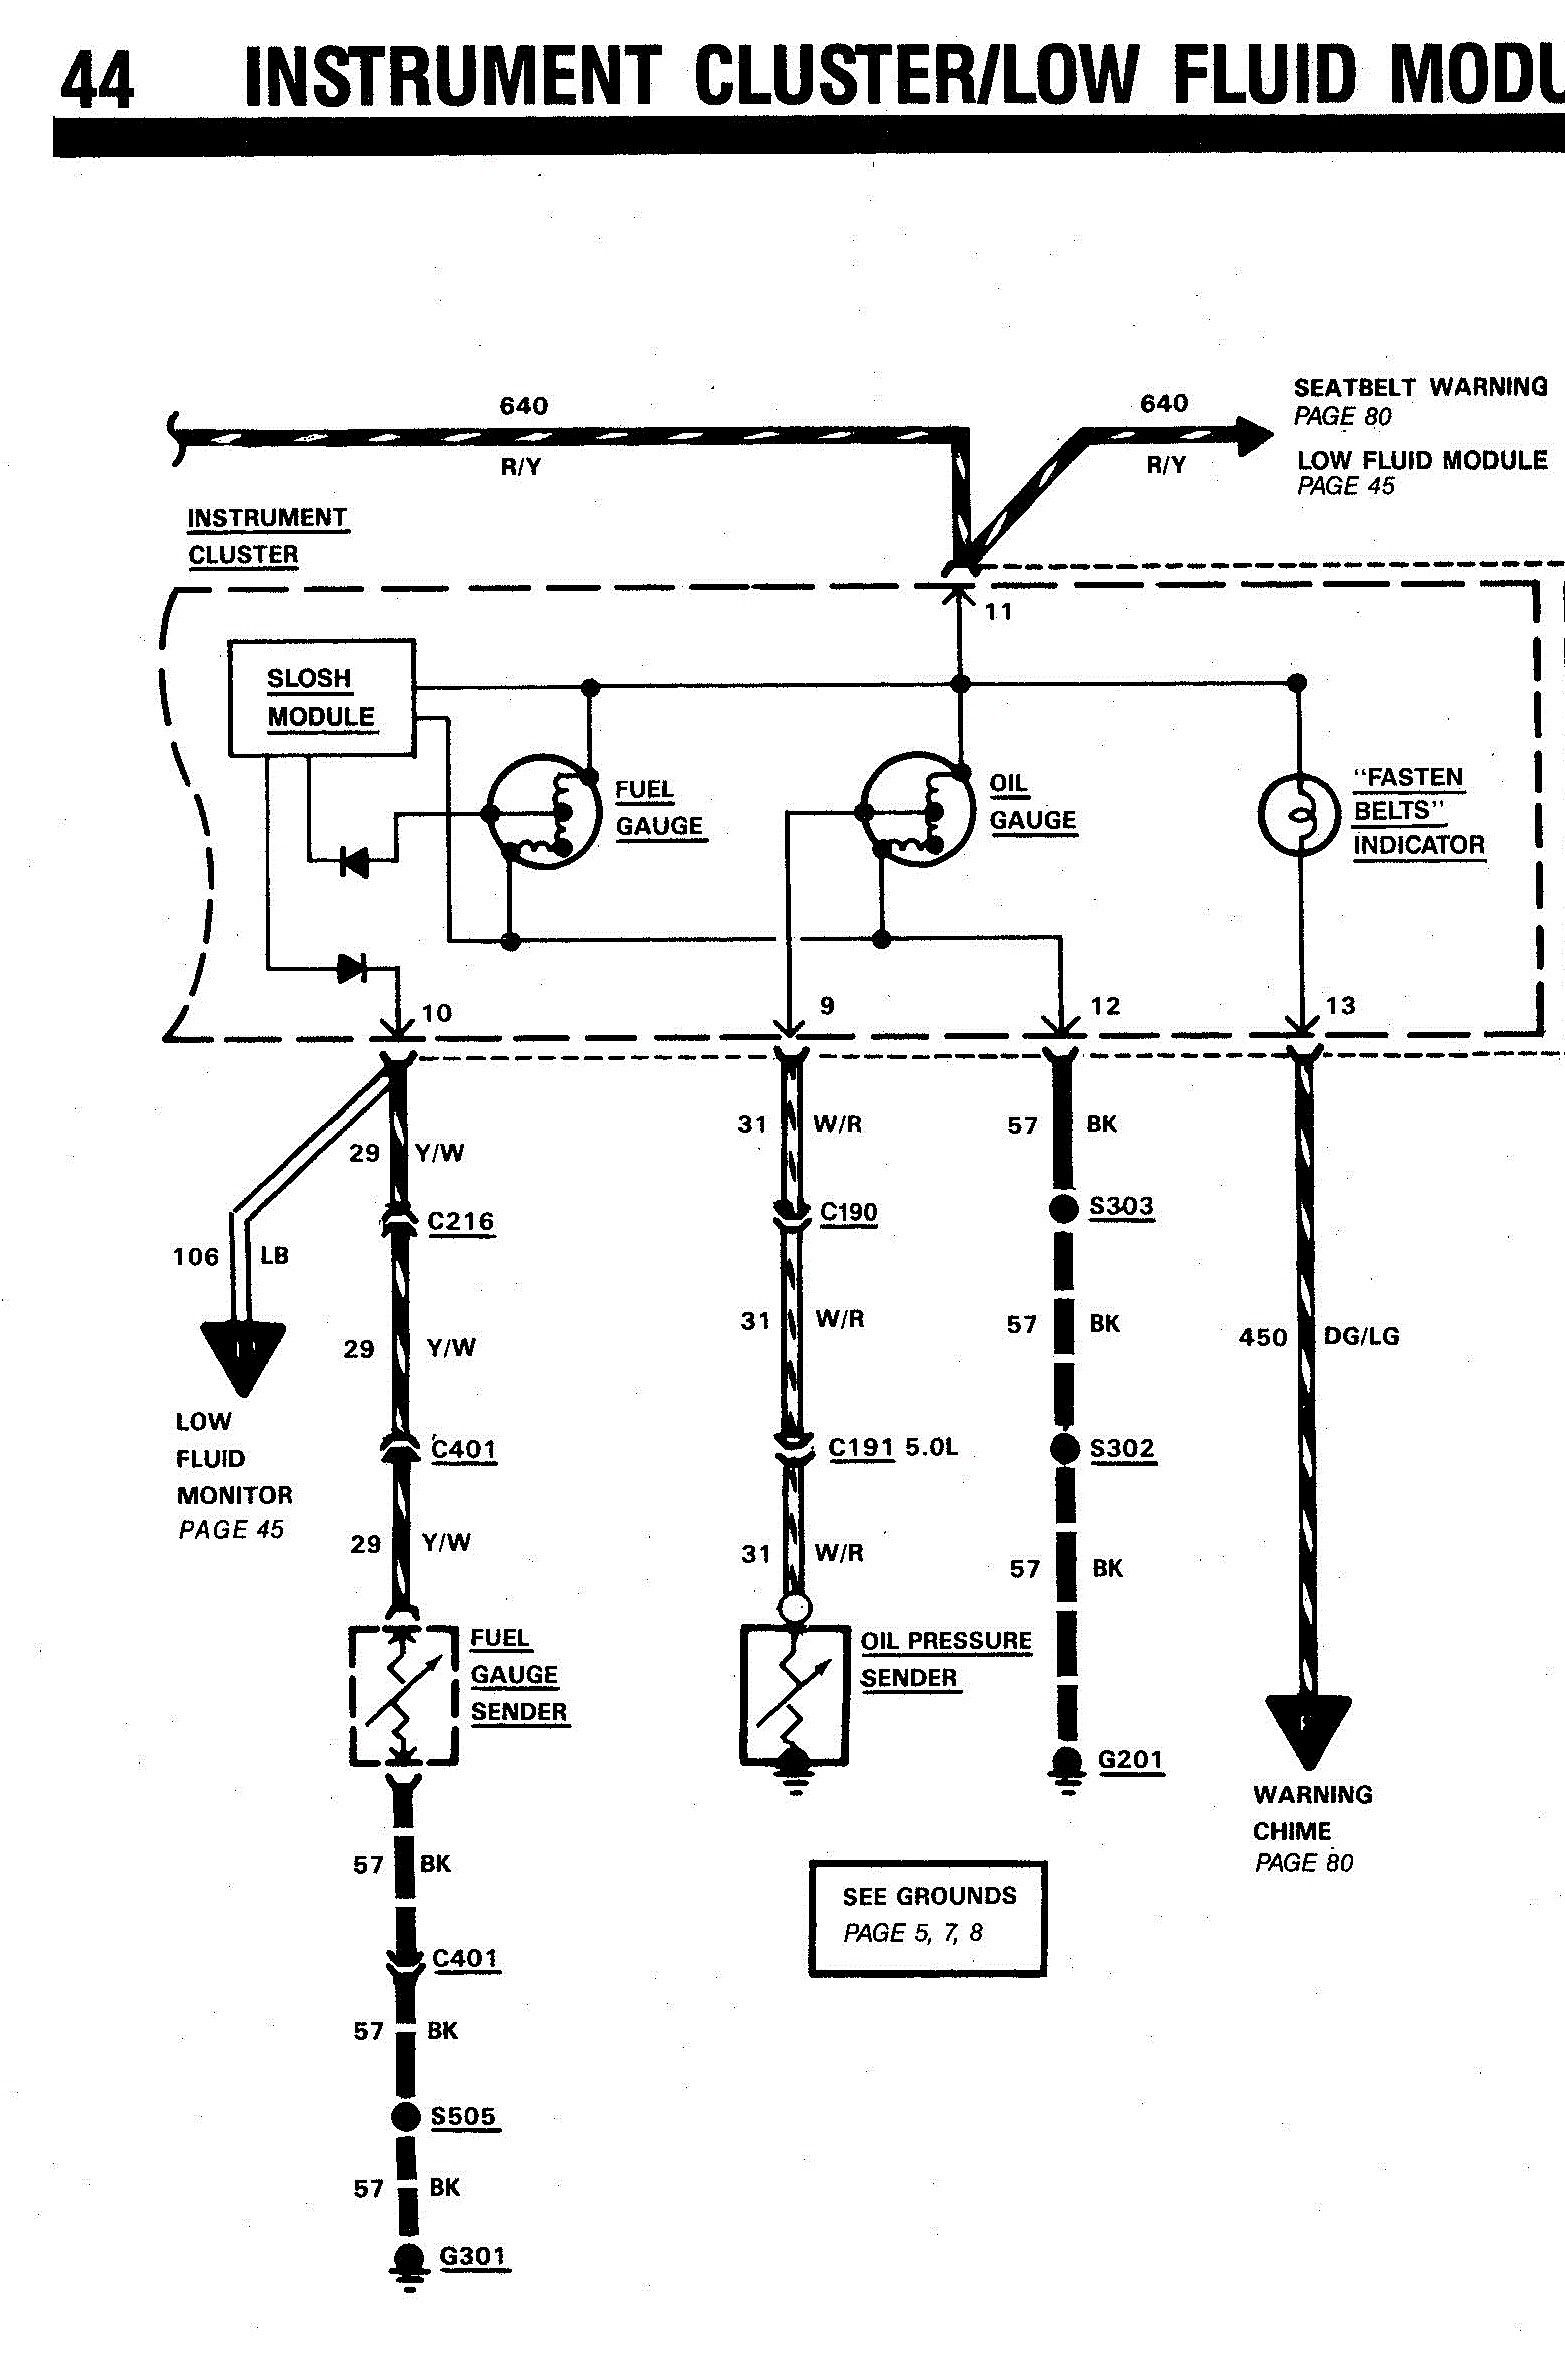 Vdo Oil Pressure Gauge Wiring Schematic Ld 3179] Fuel Pressure Gauge Wiring Diagram In Addition Vdo Of Vdo Oil Pressure Gauge Wiring Schematic